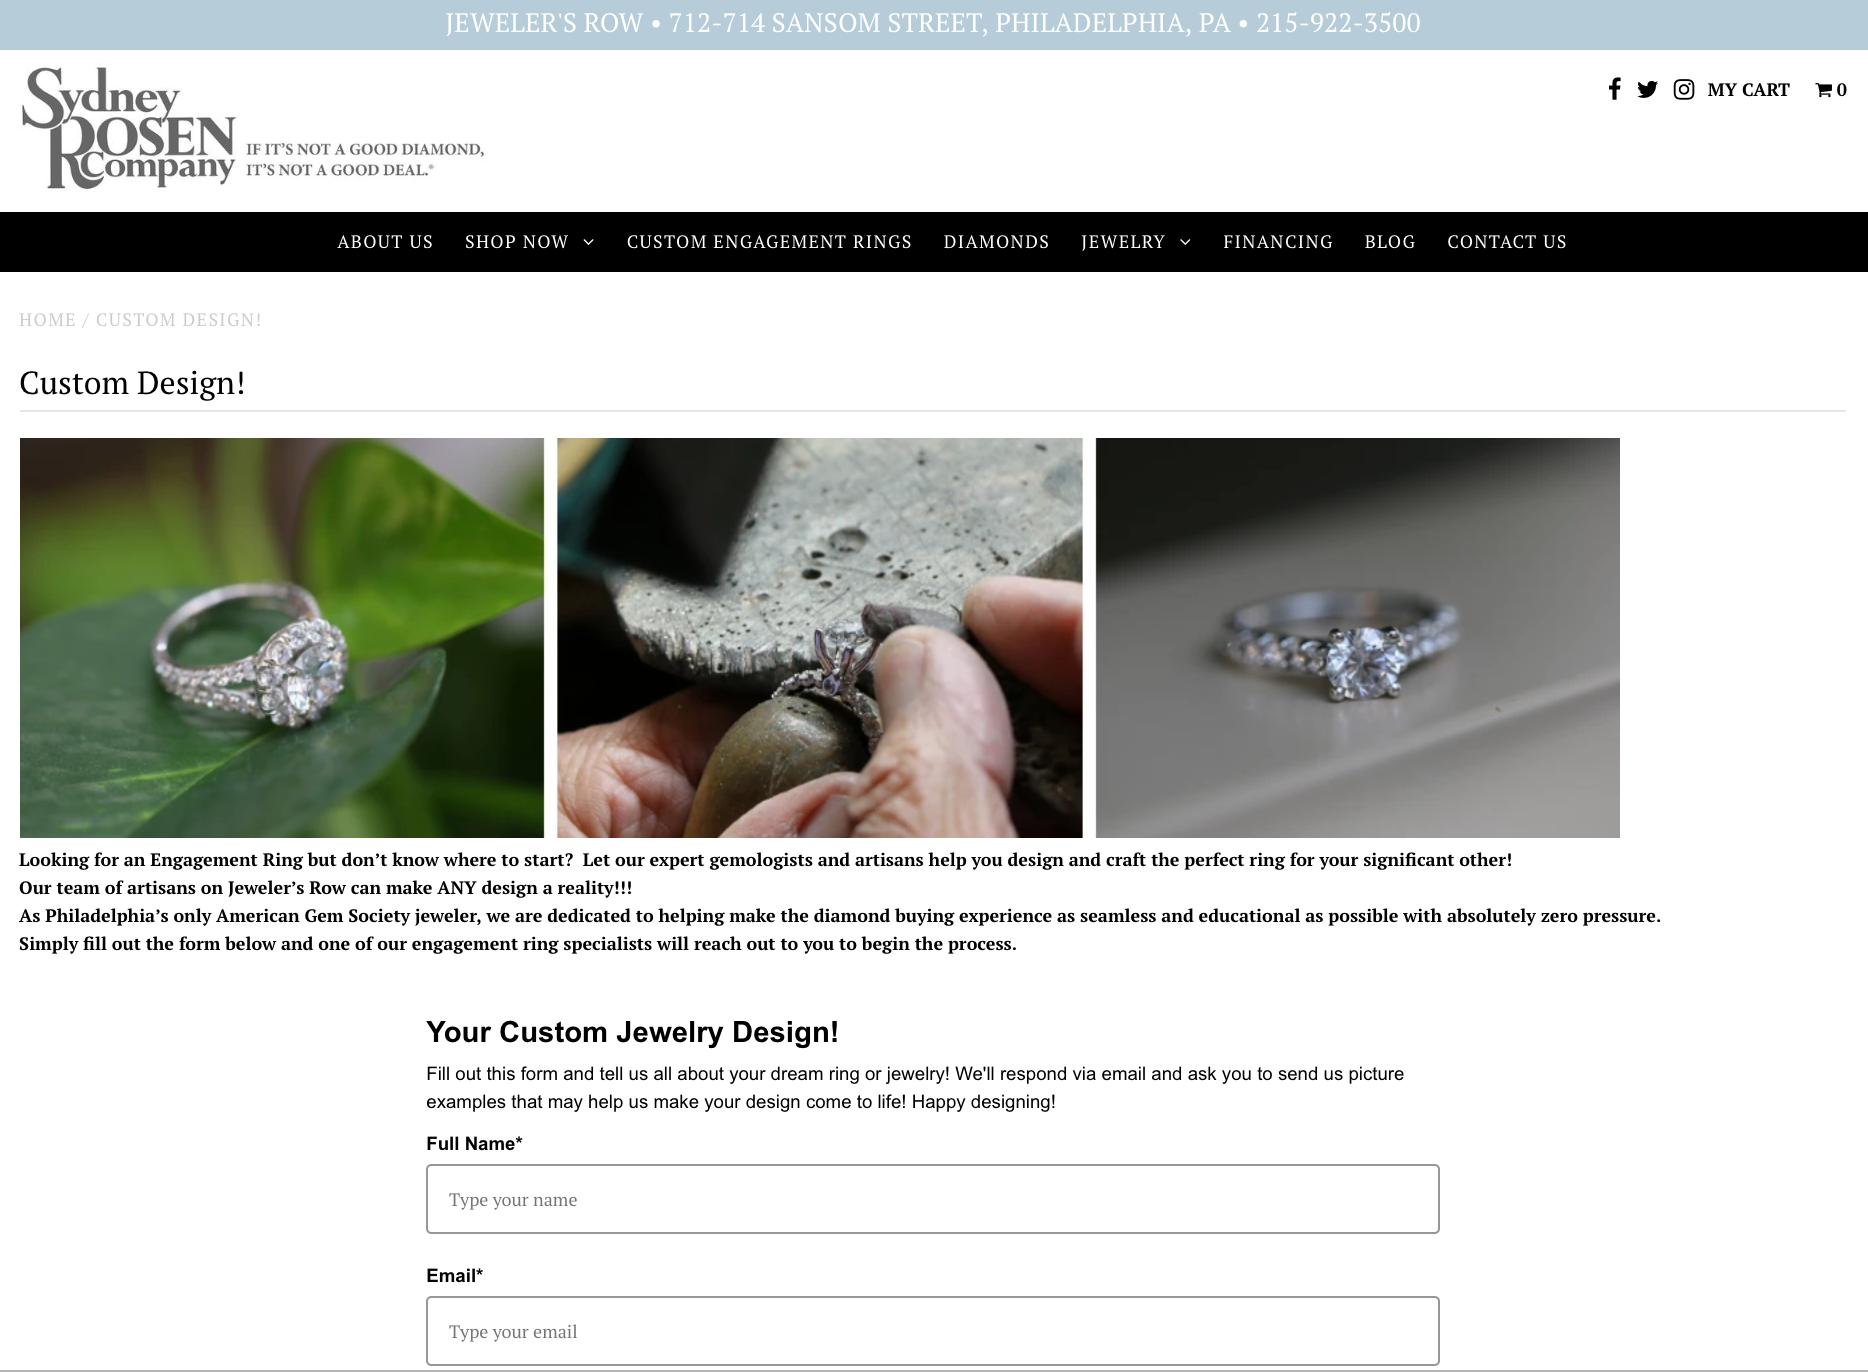 Custom Jewelry Design at Sydney Rosen